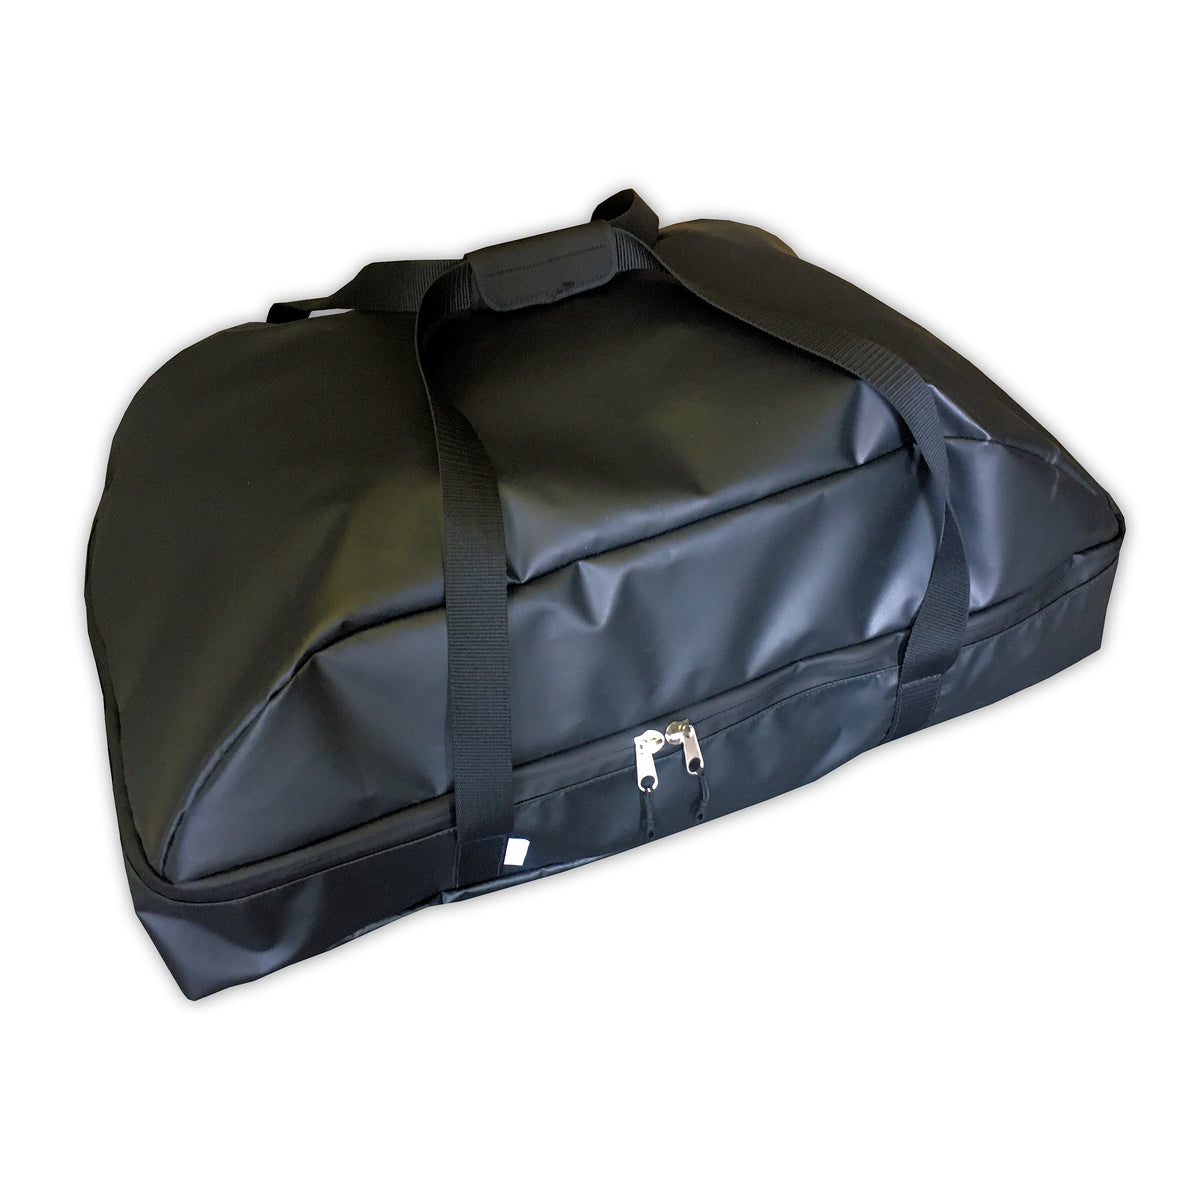 The best carry bag for your Weber Q2000